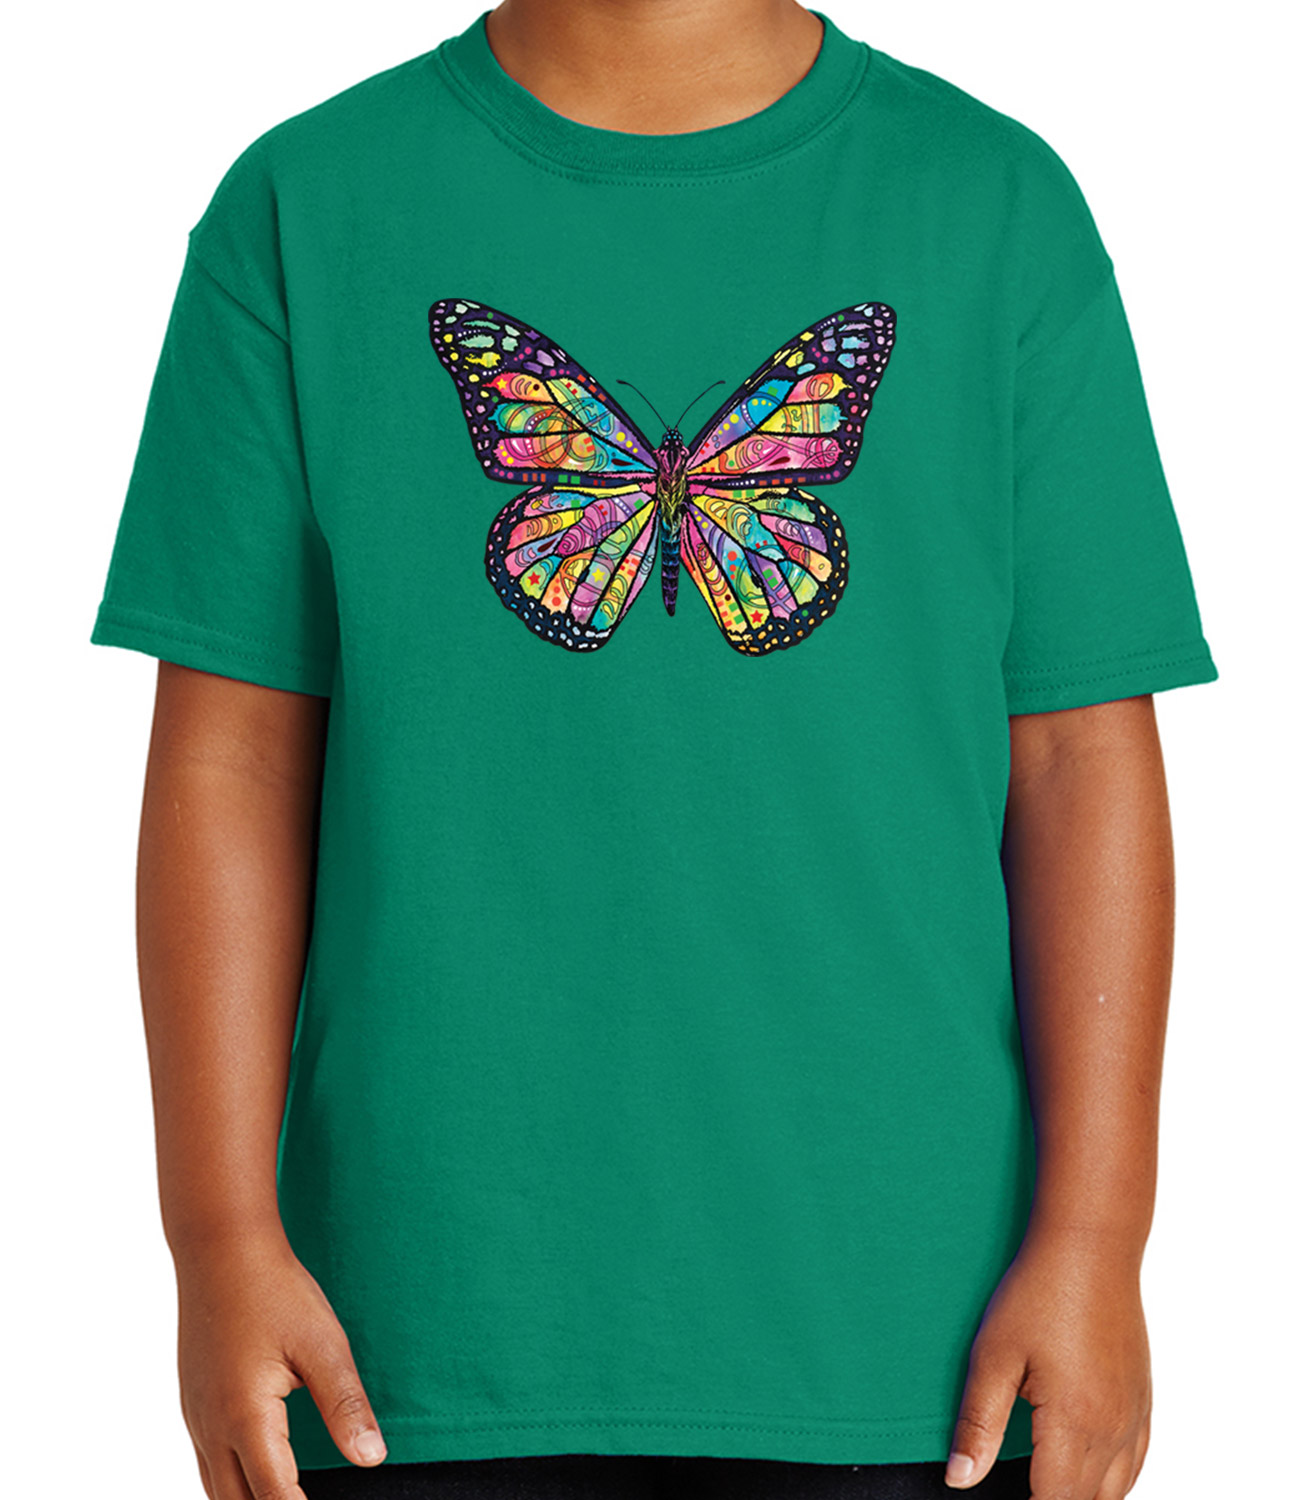 Neon Butterfly Kid/'s T-shirt Cute Rainbow Colors Butterfly Tee for Youth 1594C